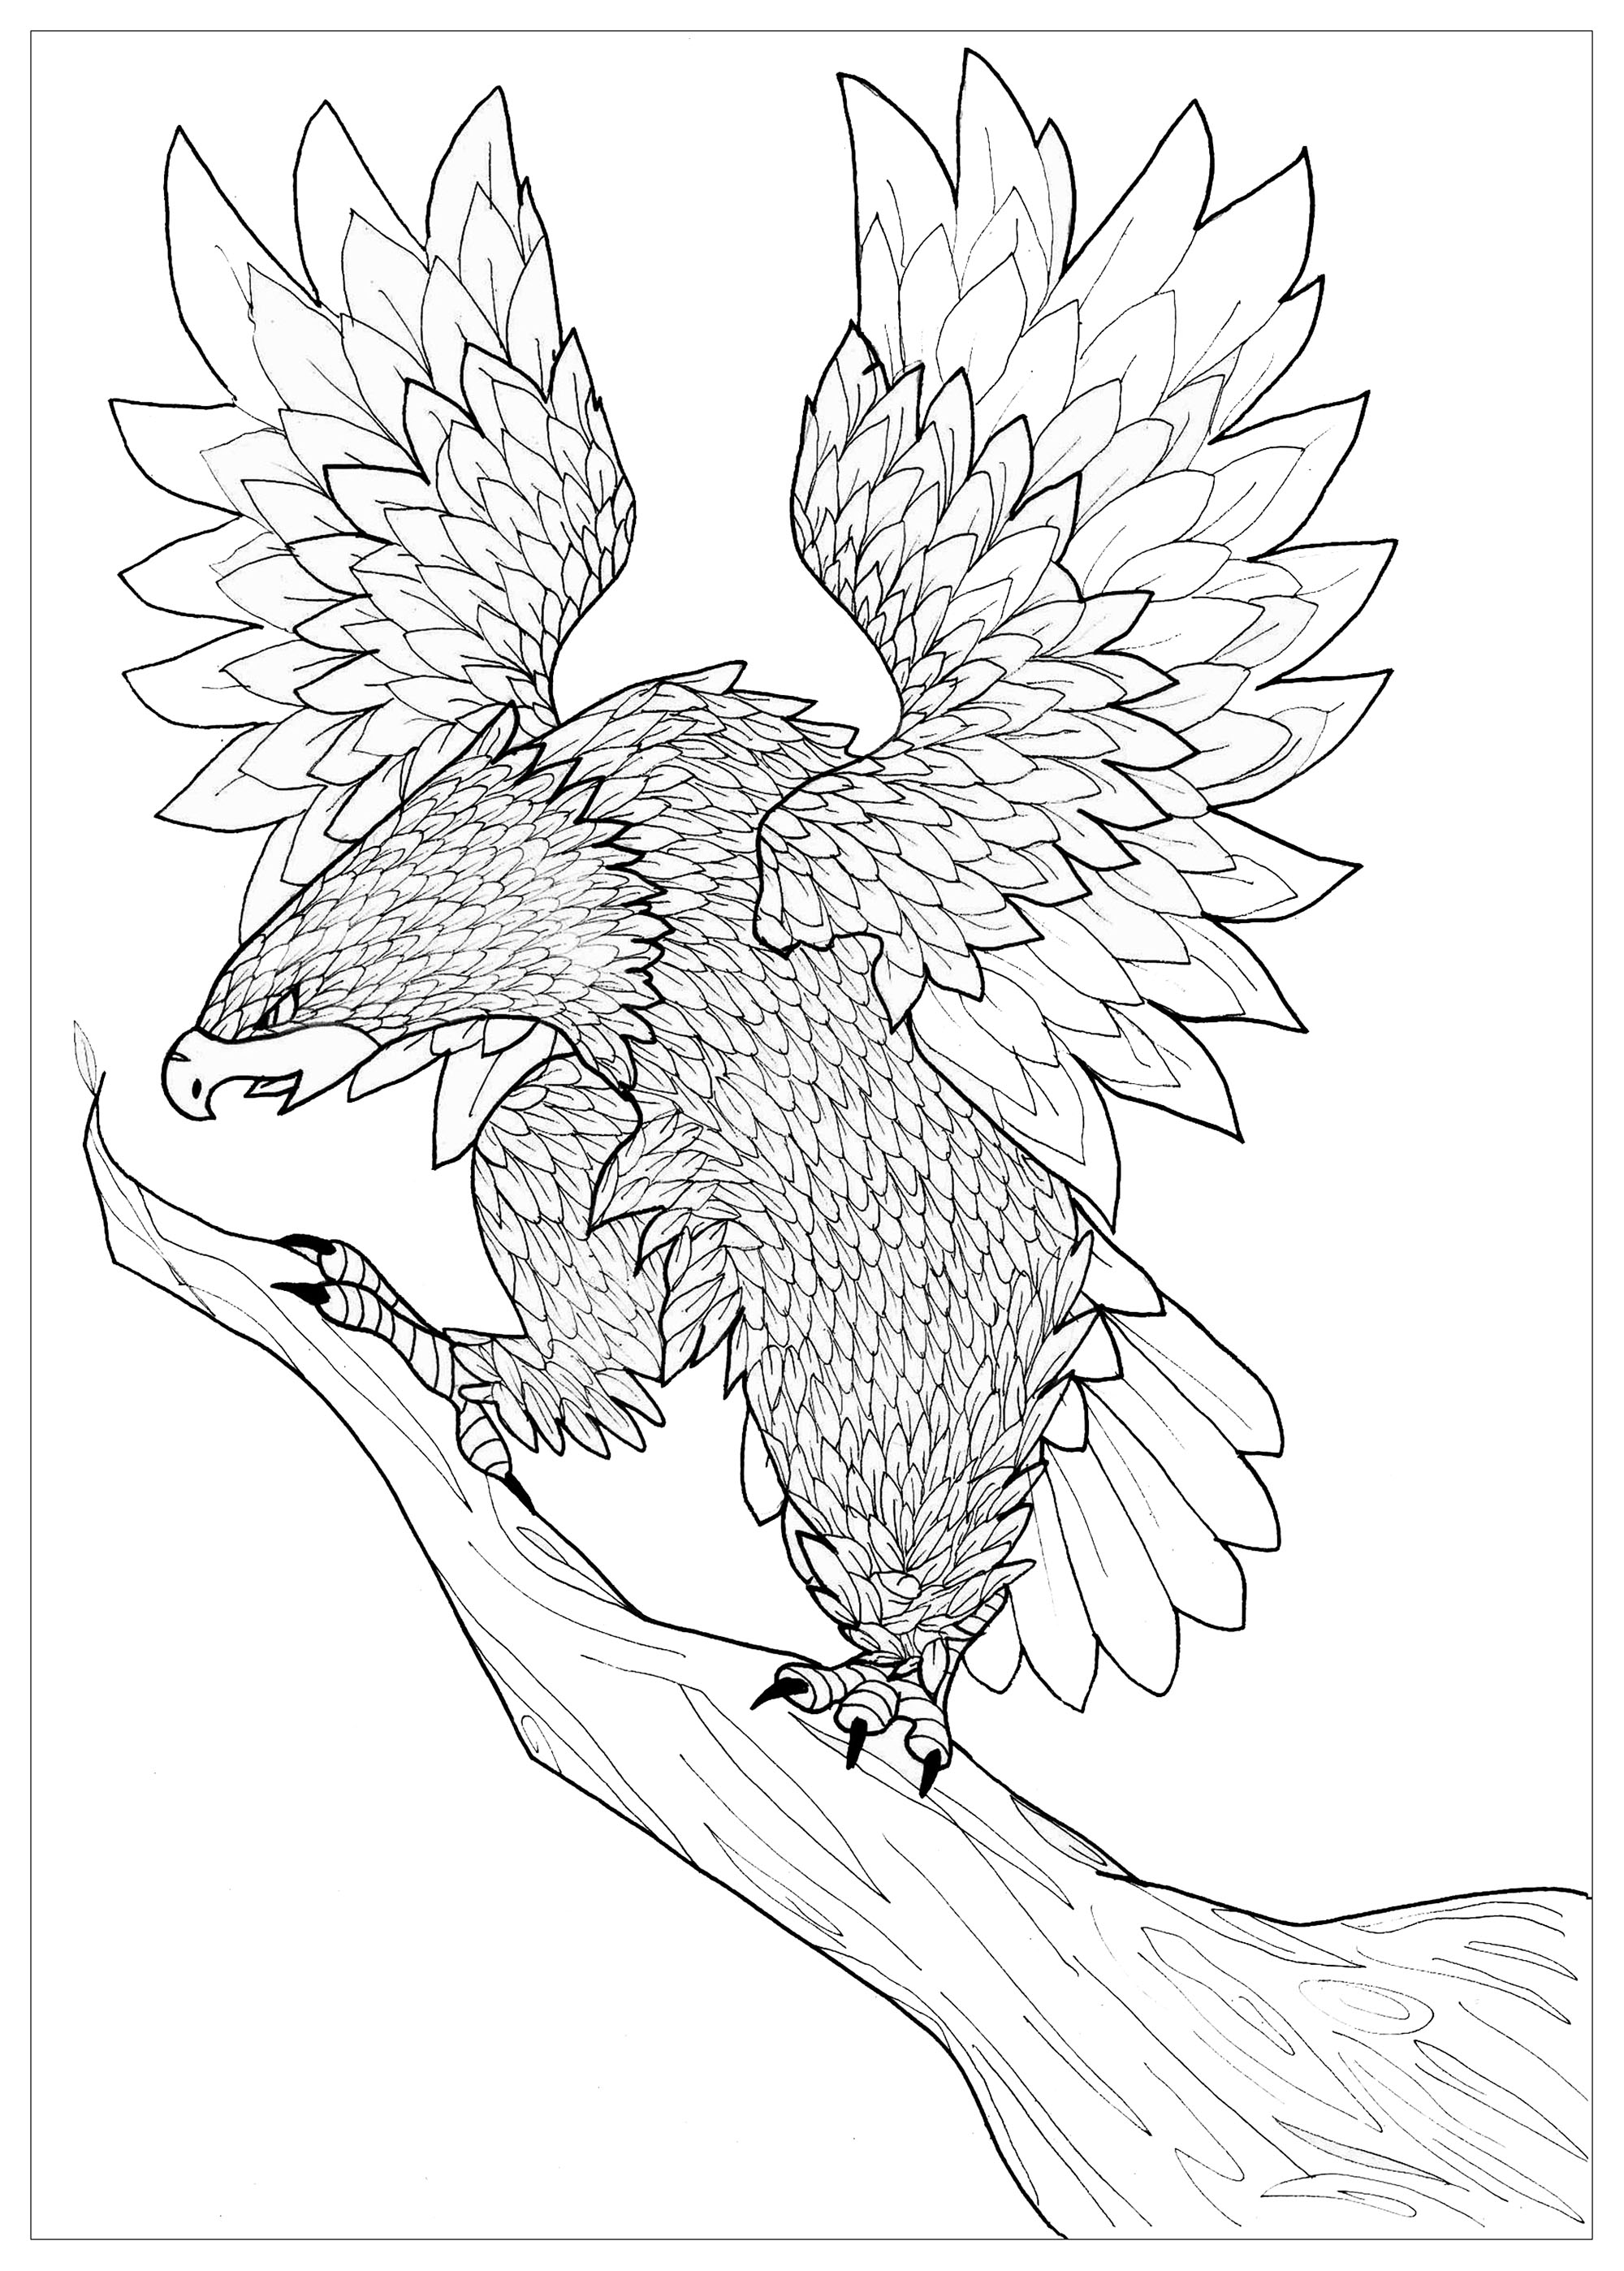 coloring pages eagle eagle birds adult coloring pages eagle pages coloring